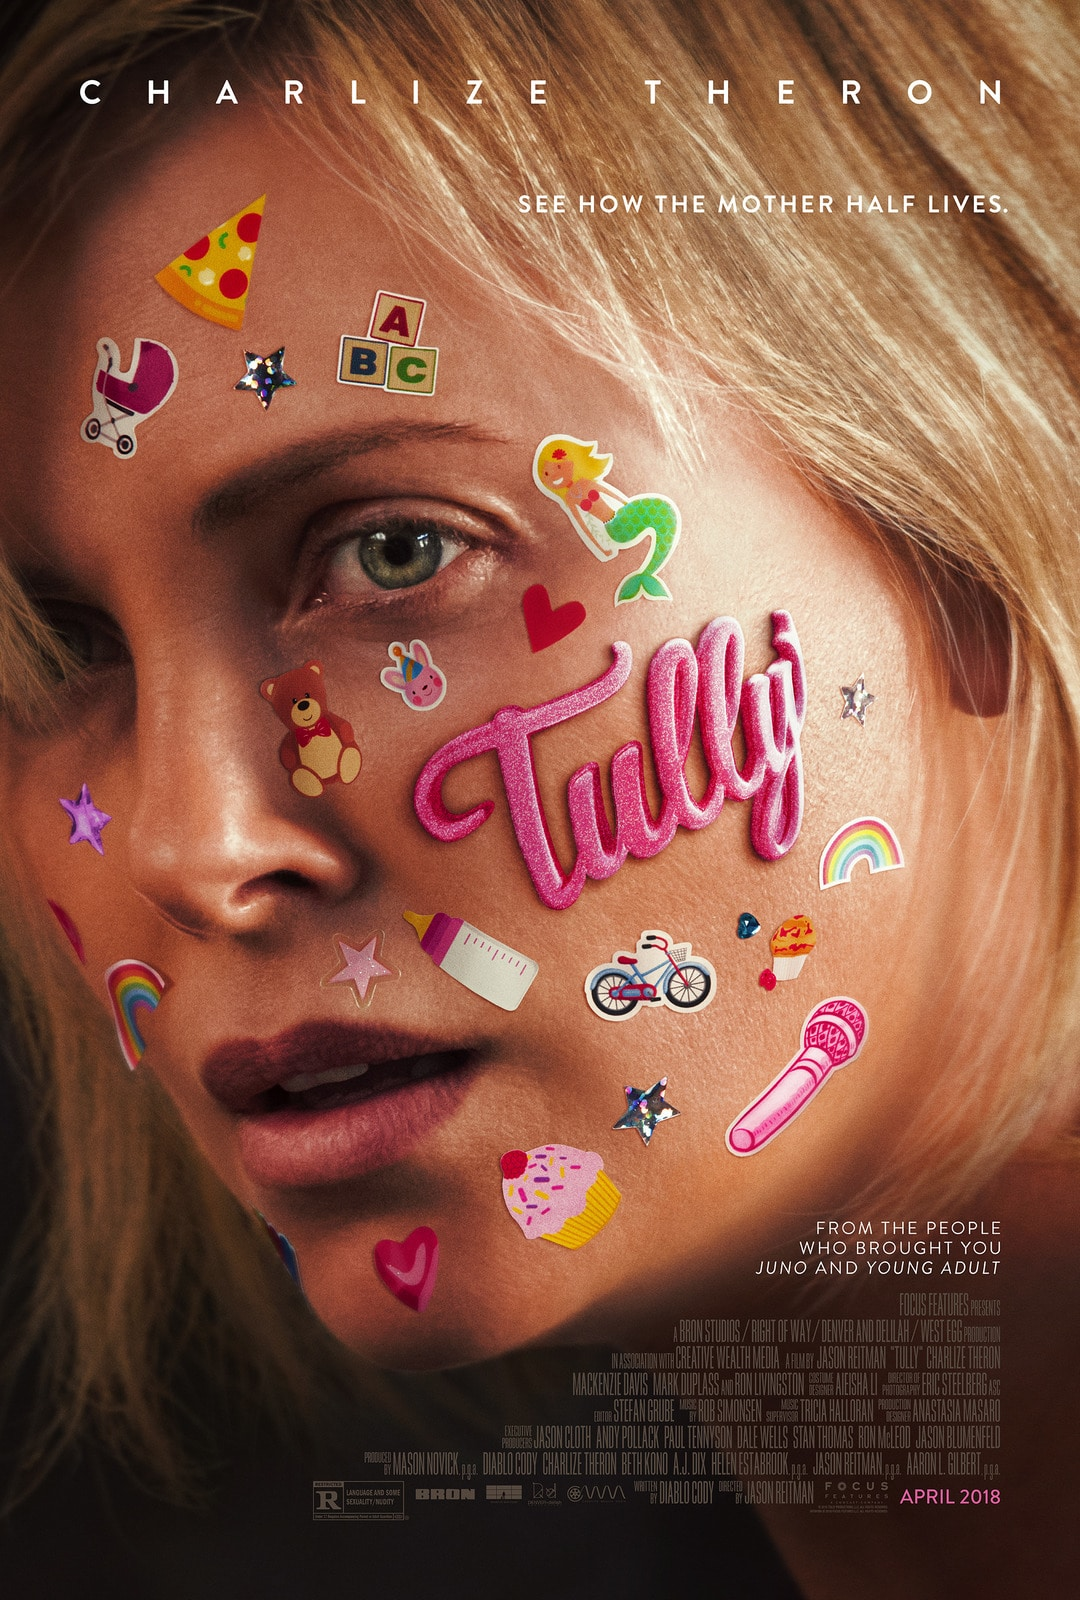 NEW Poster + Sweepstakes for Focus Features' Tully #Tully